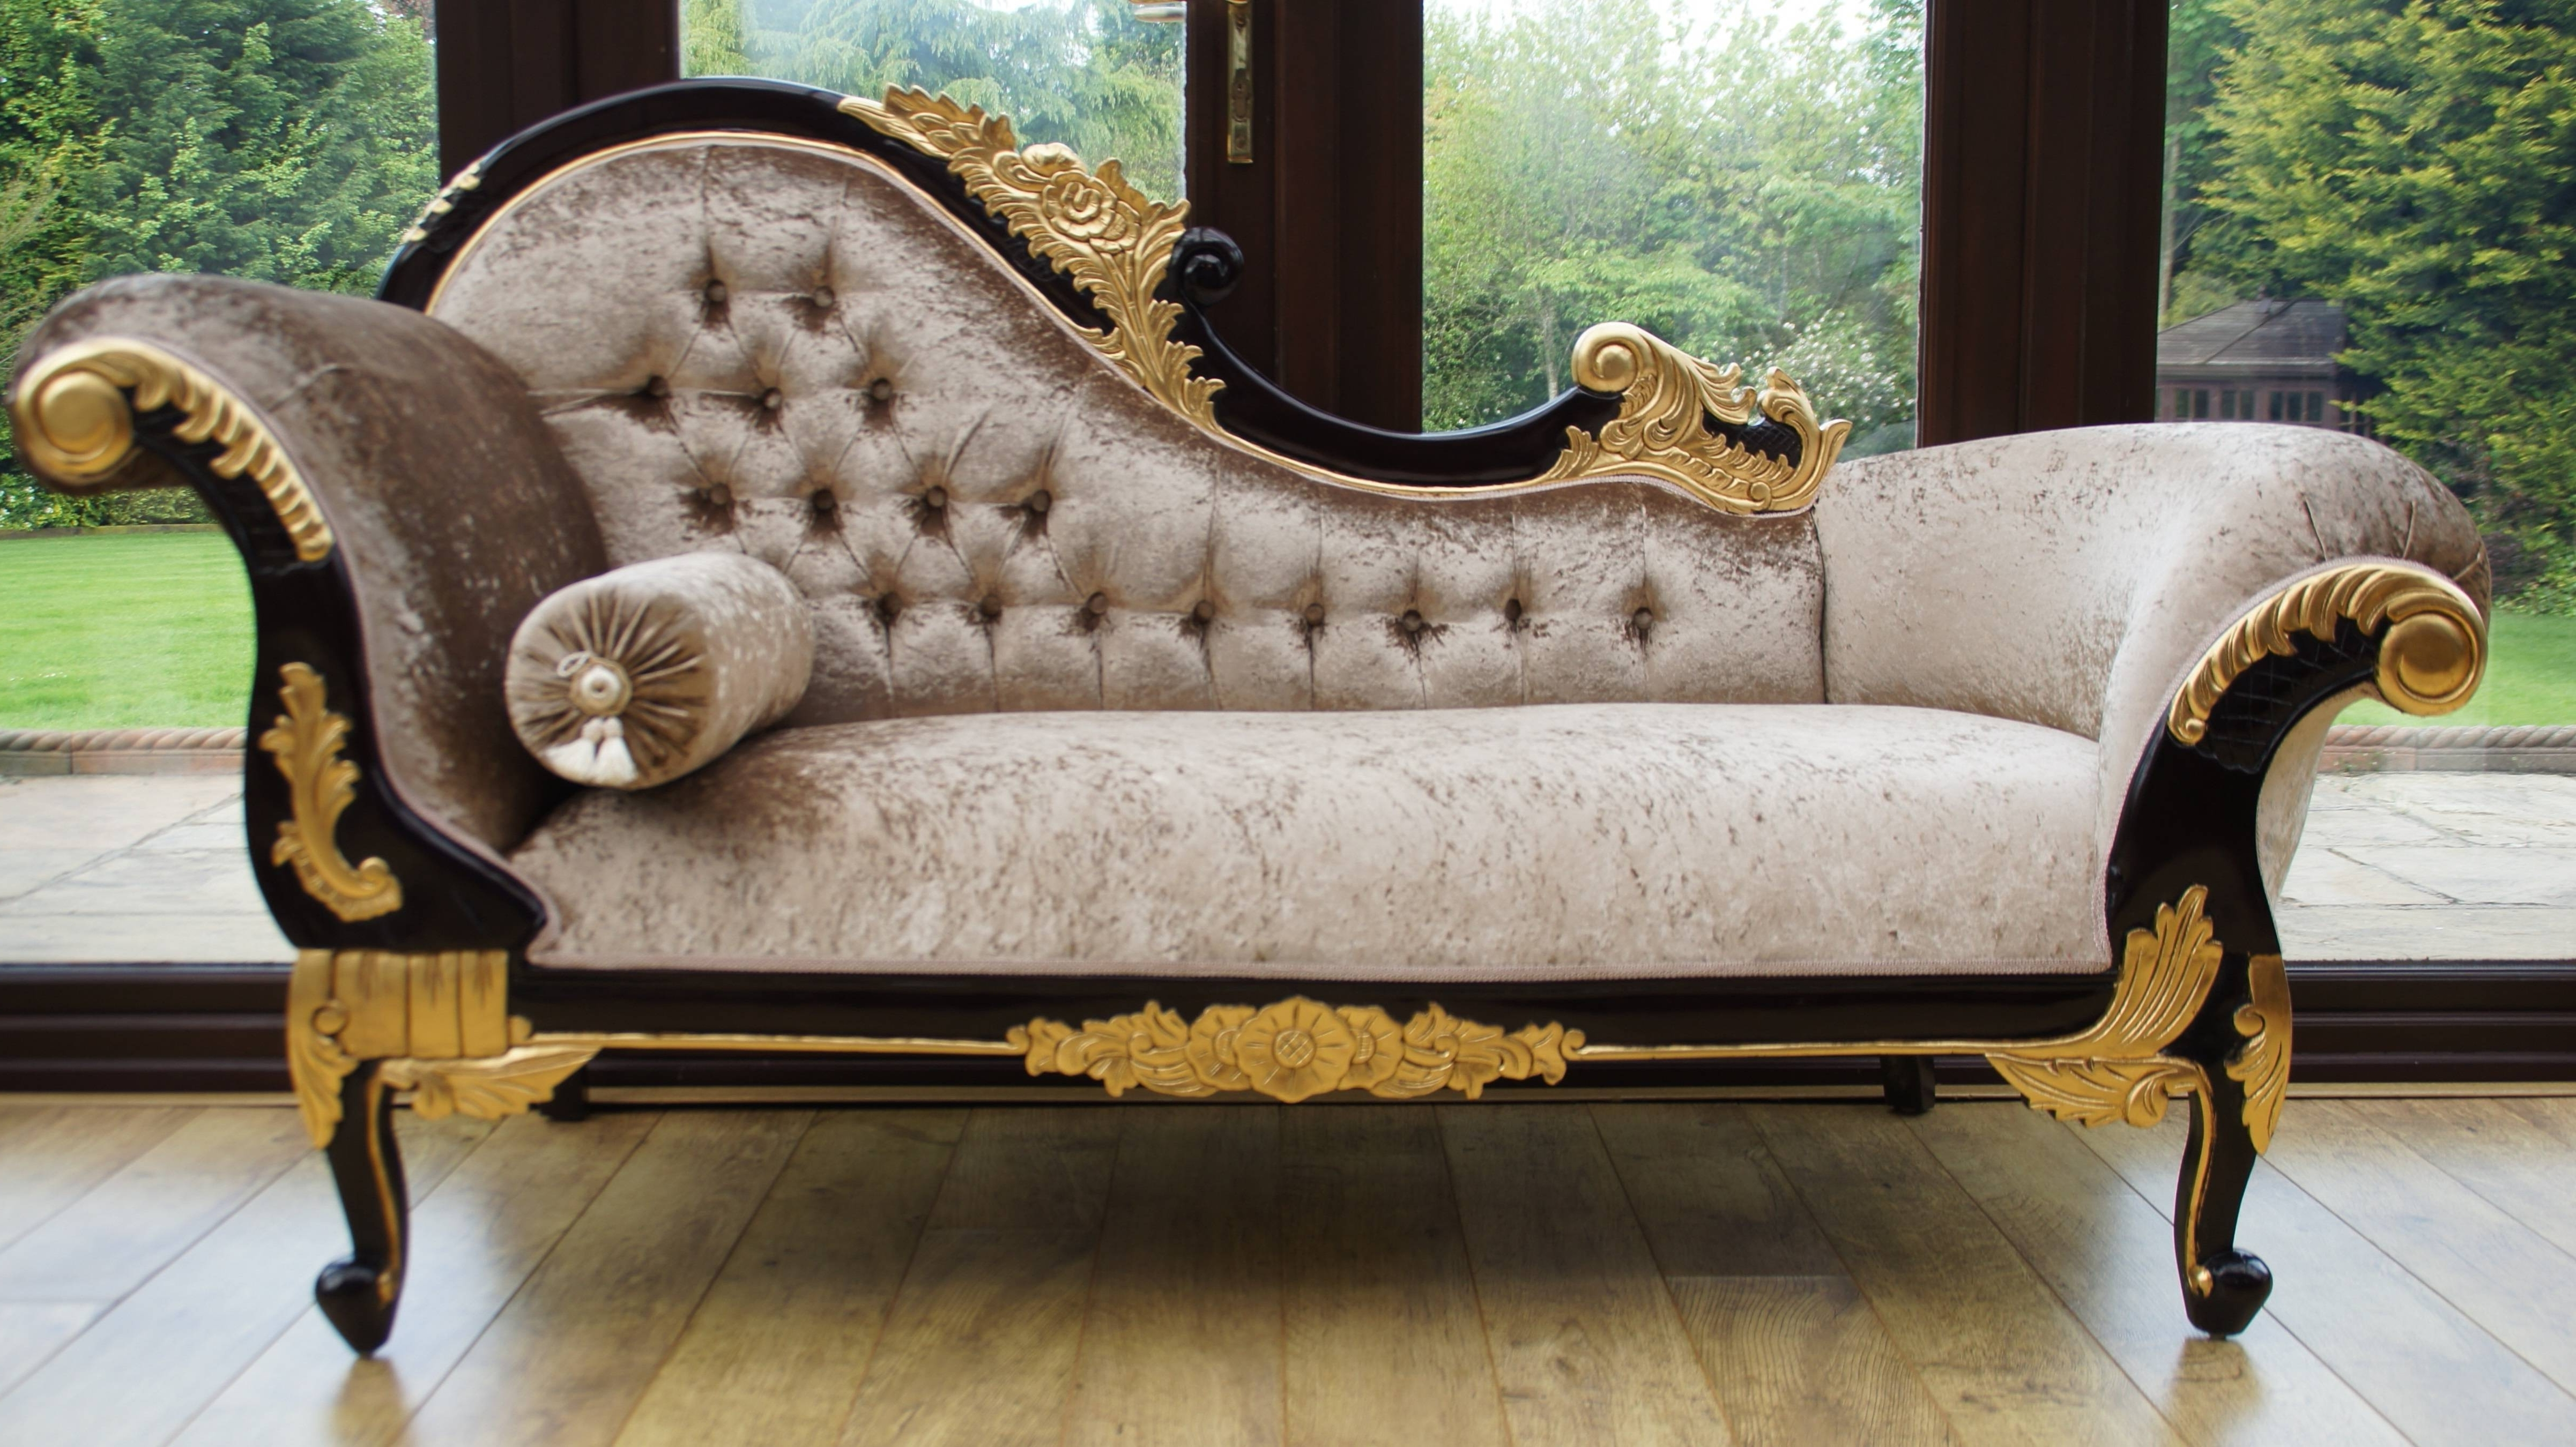 2017 Chaise Chair Beautiful Antique Furniture Black And Gold Velvet Of Throughout Gold Chaise Lounges (View 13 of 15)